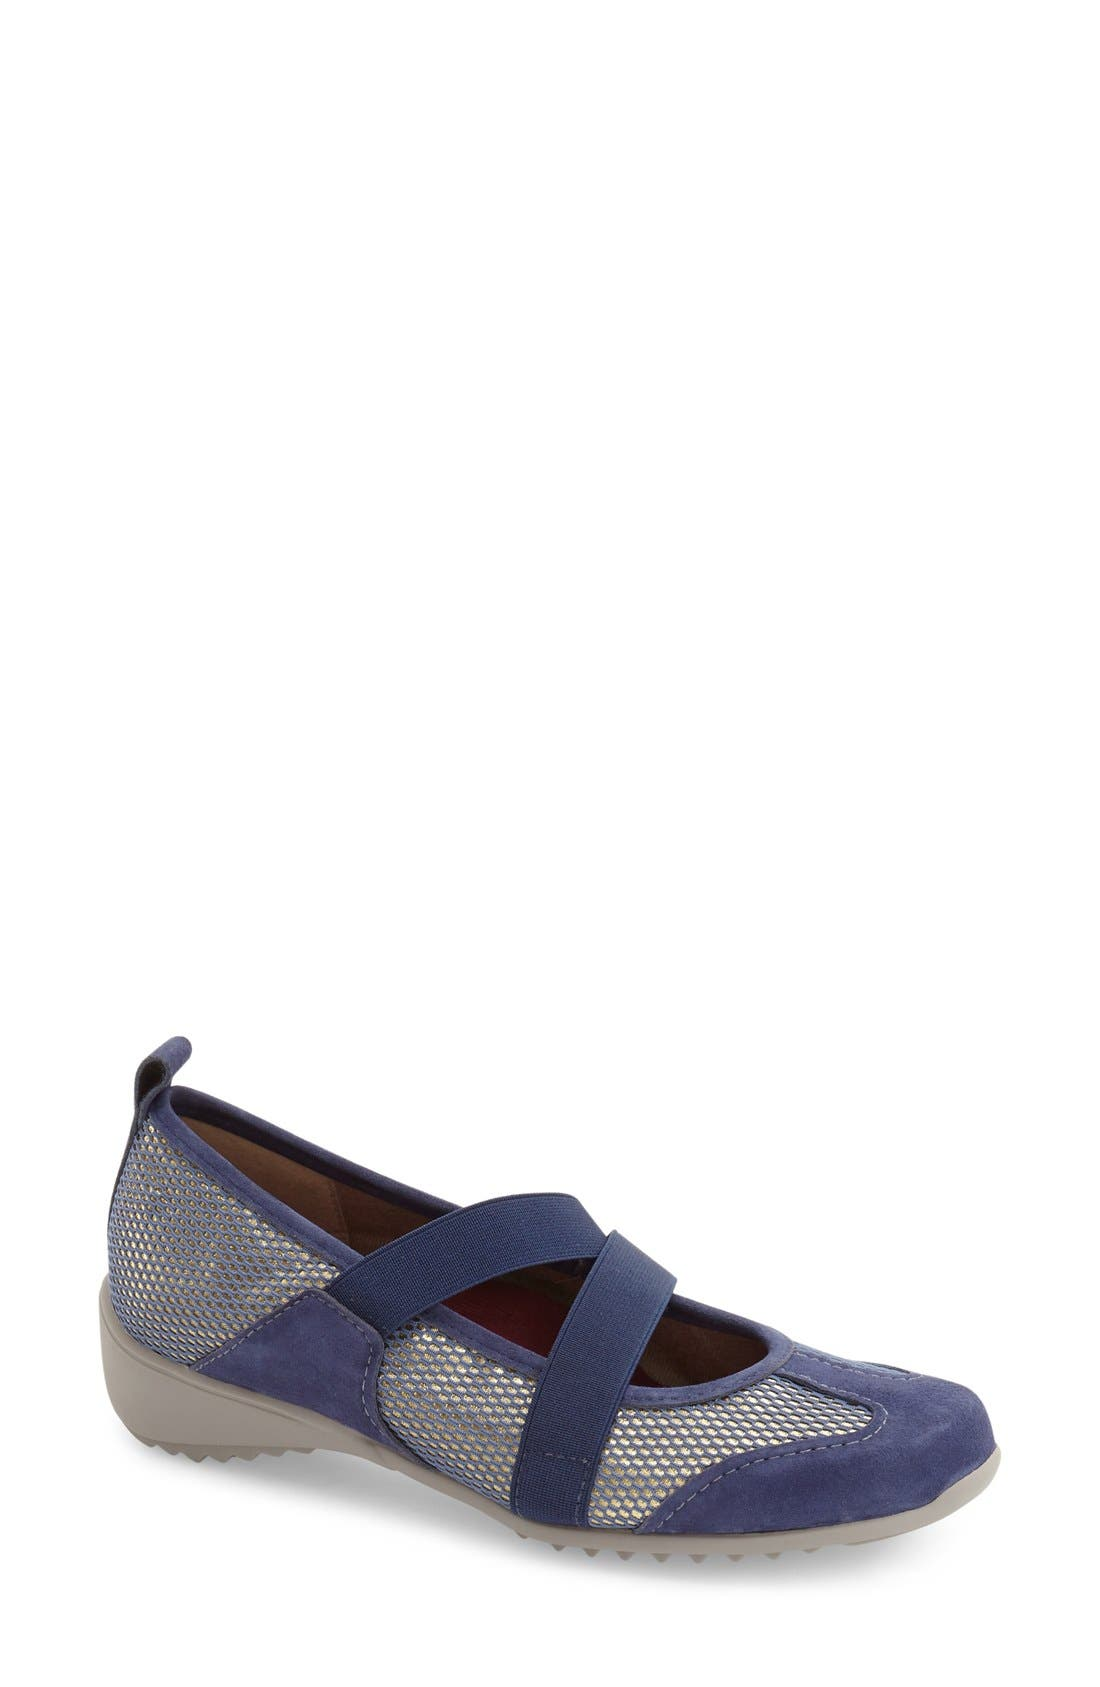 'Zip' Mary Jane Flat,                         Main,                         color, Blue Combo